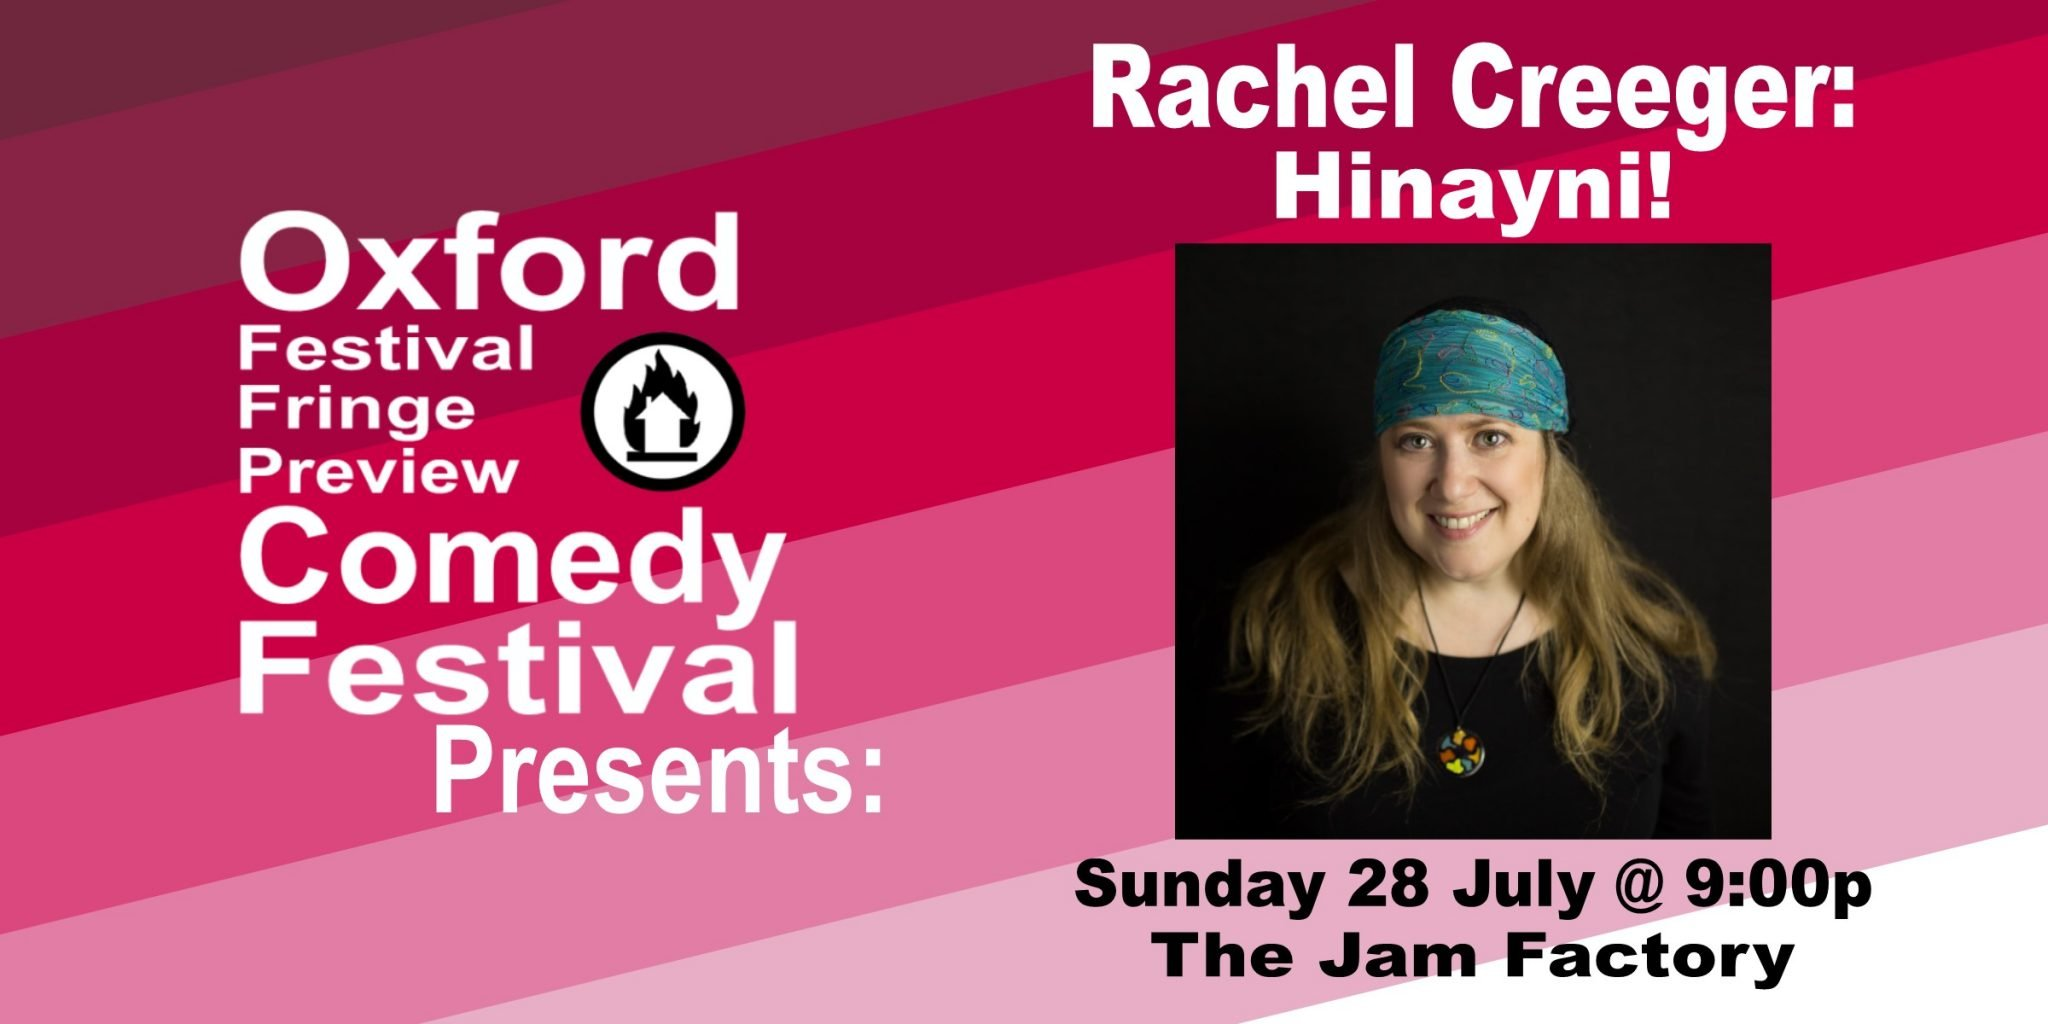 Oxford Comedy Festival 2019 presents Rachel Creeger: Hinayni!